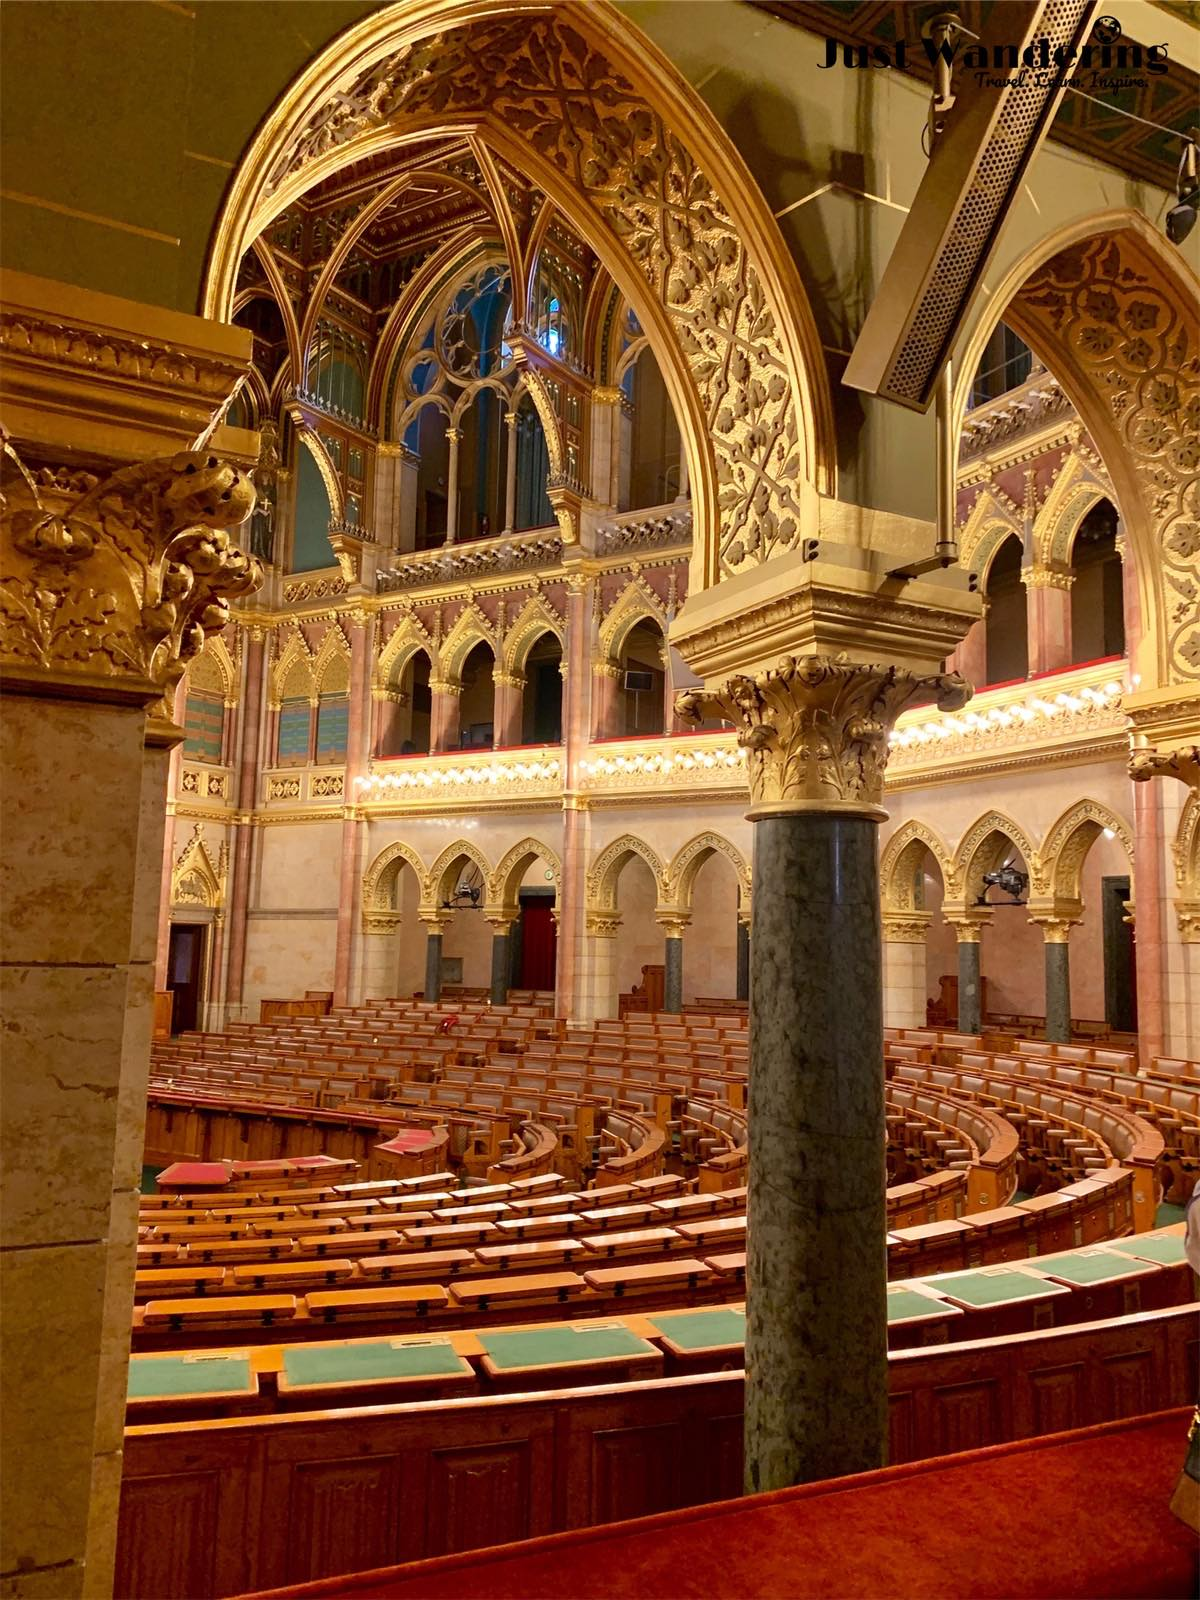 - A highlight of the tour is the majestic assembly hall of Hungary's National Assembly.